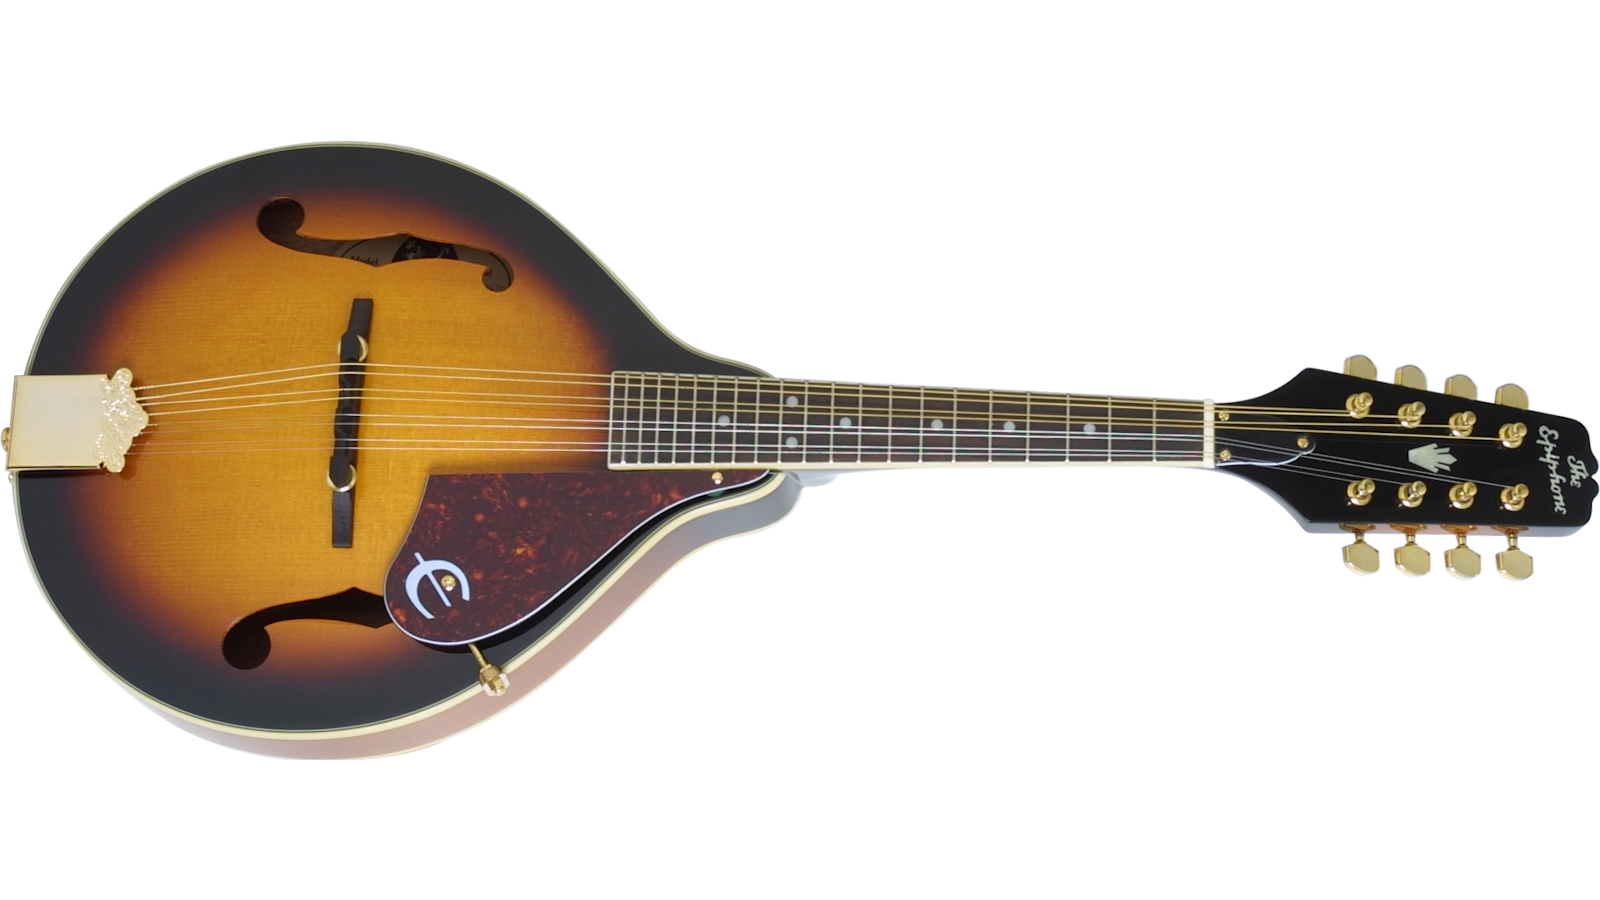 MM-30S A-style Mandolin